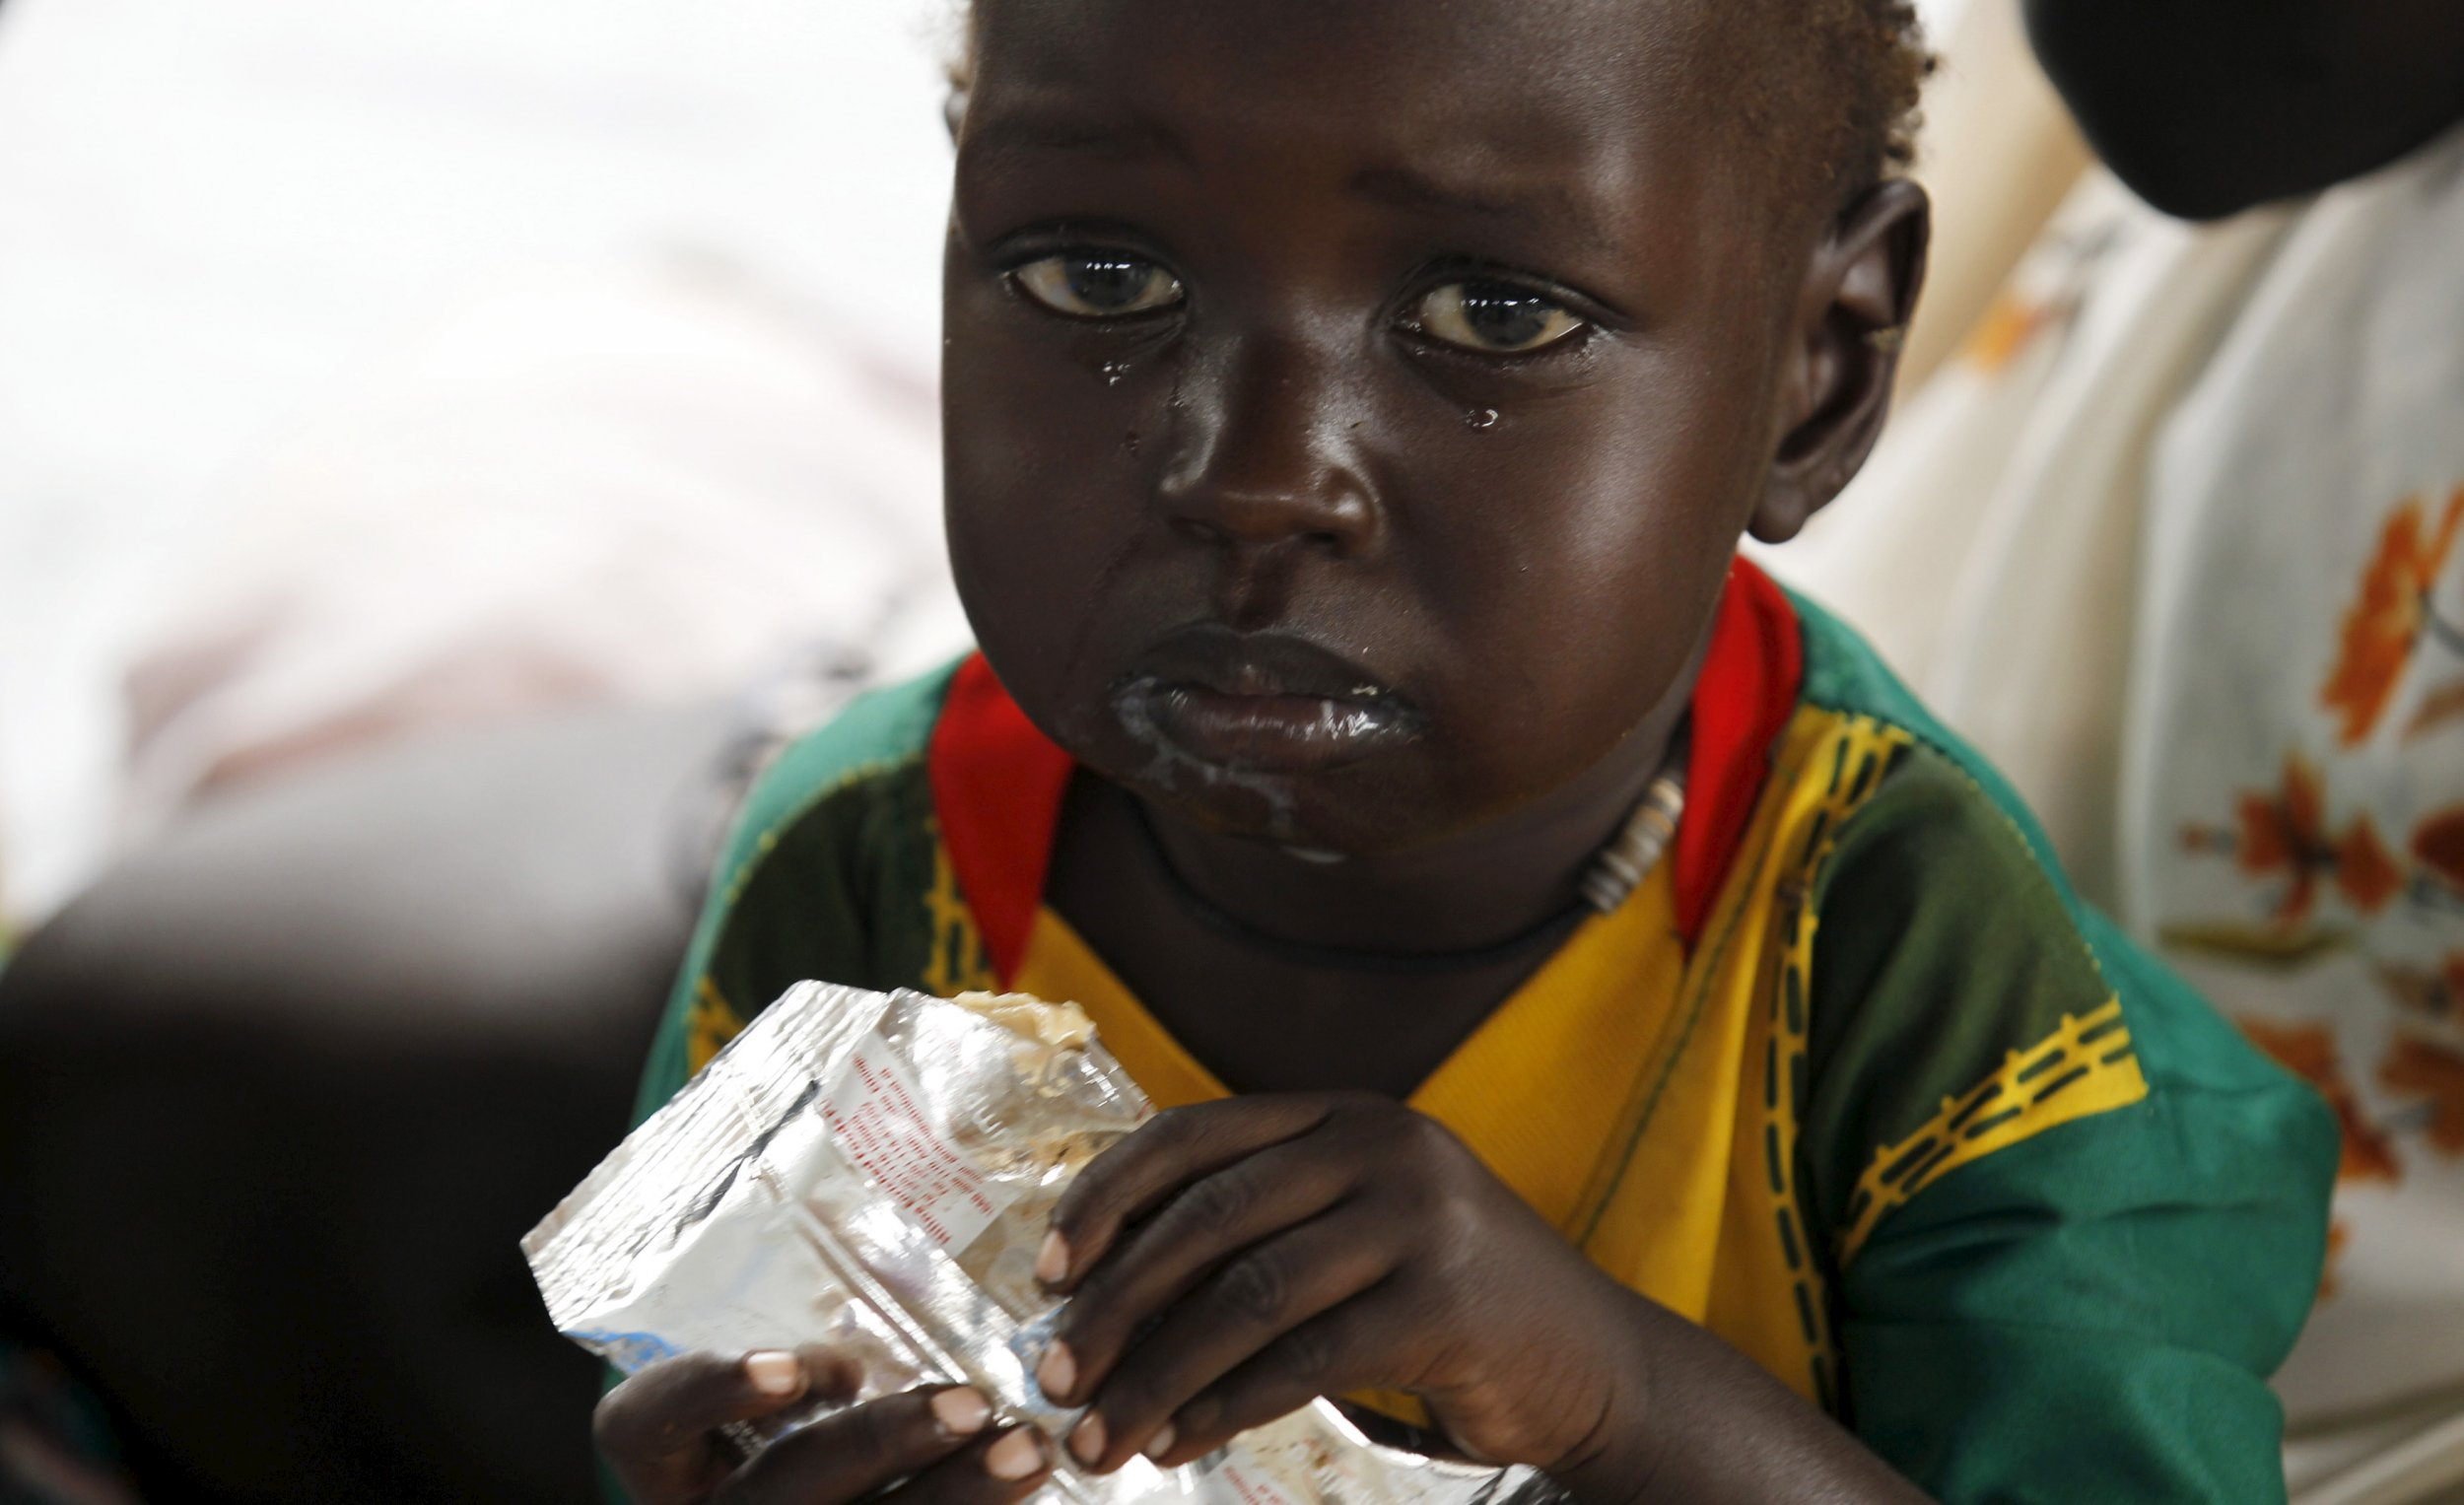 A South Sudanese child in a refugee camp in Ethiopia.